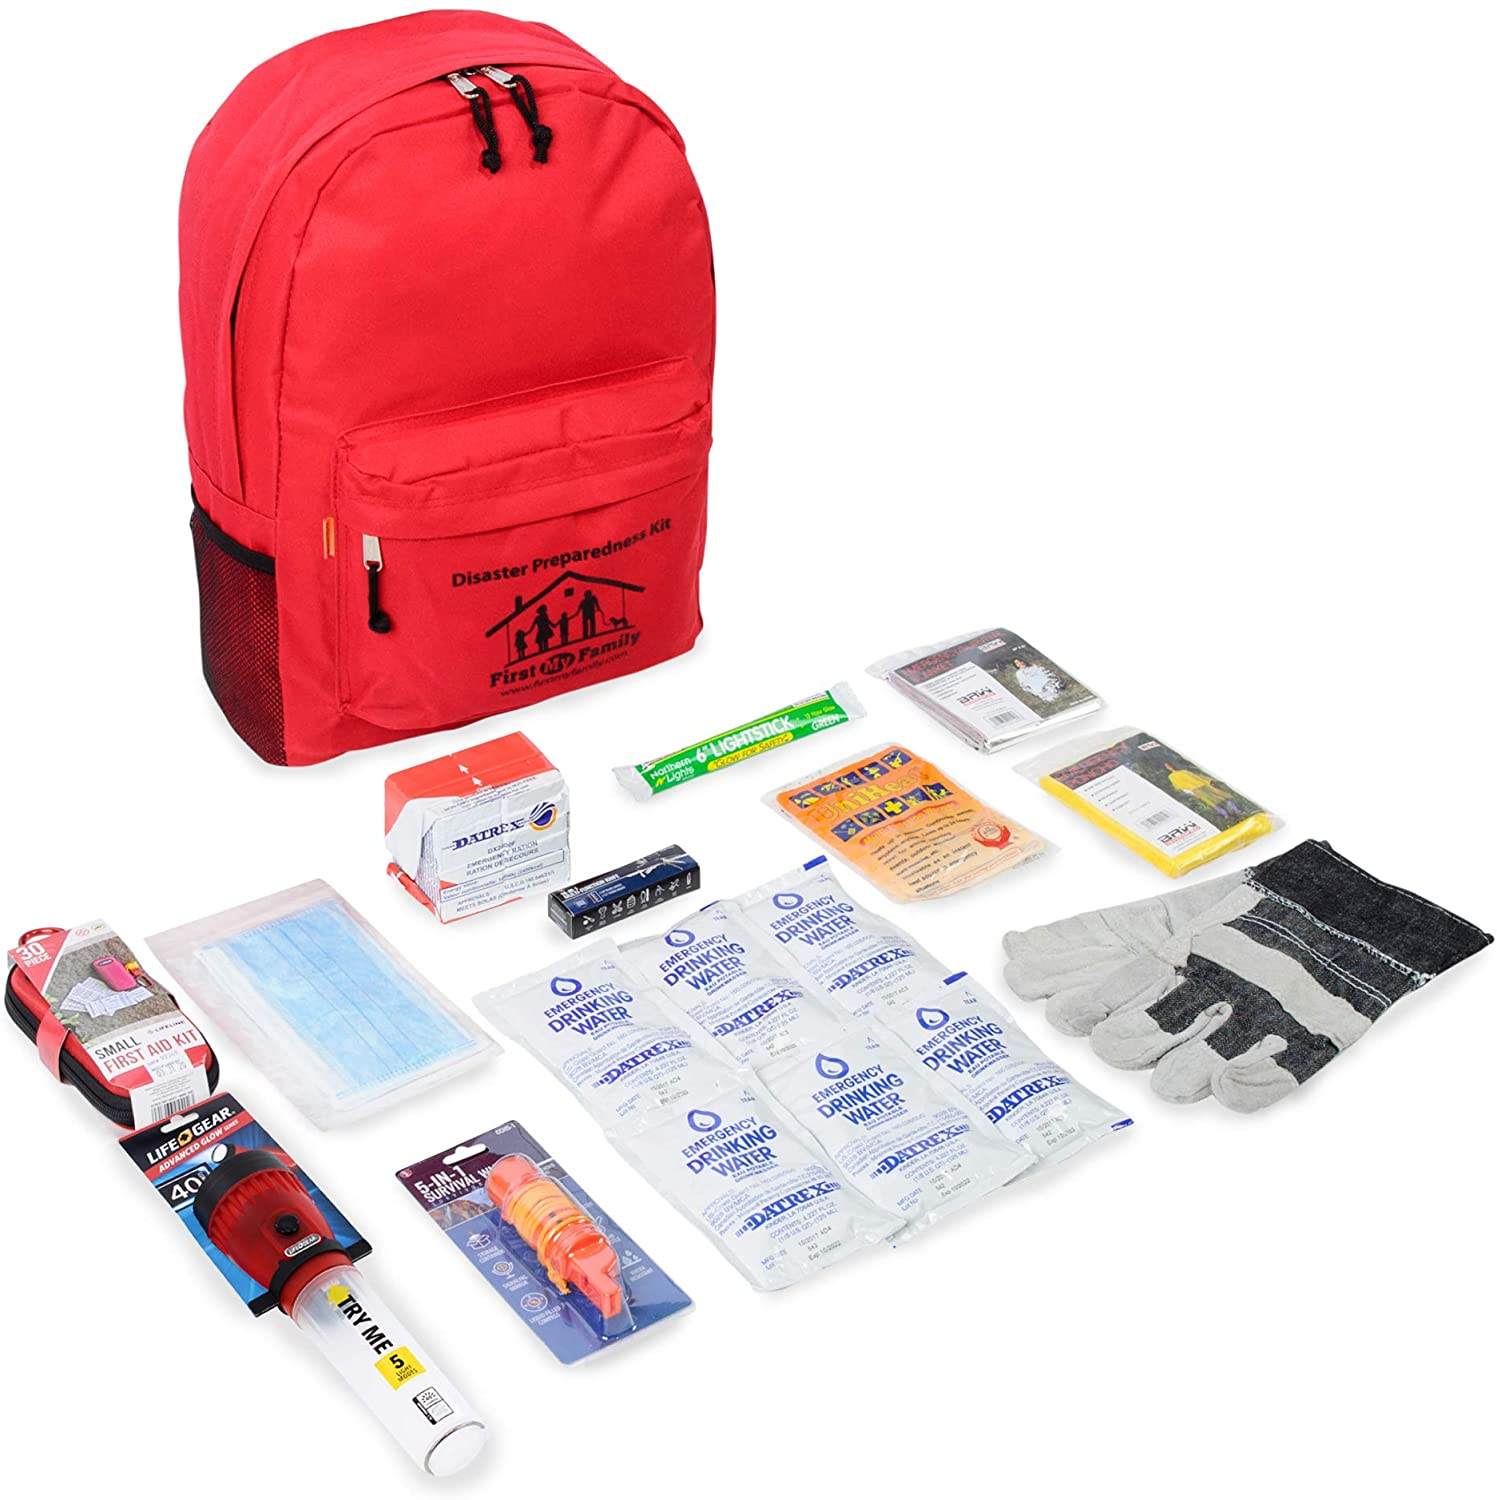 First My Family A Disaster Preparedness Company 1PKIT All-in-One Single Person Premium Disaster Preparedness Survival Kit 1